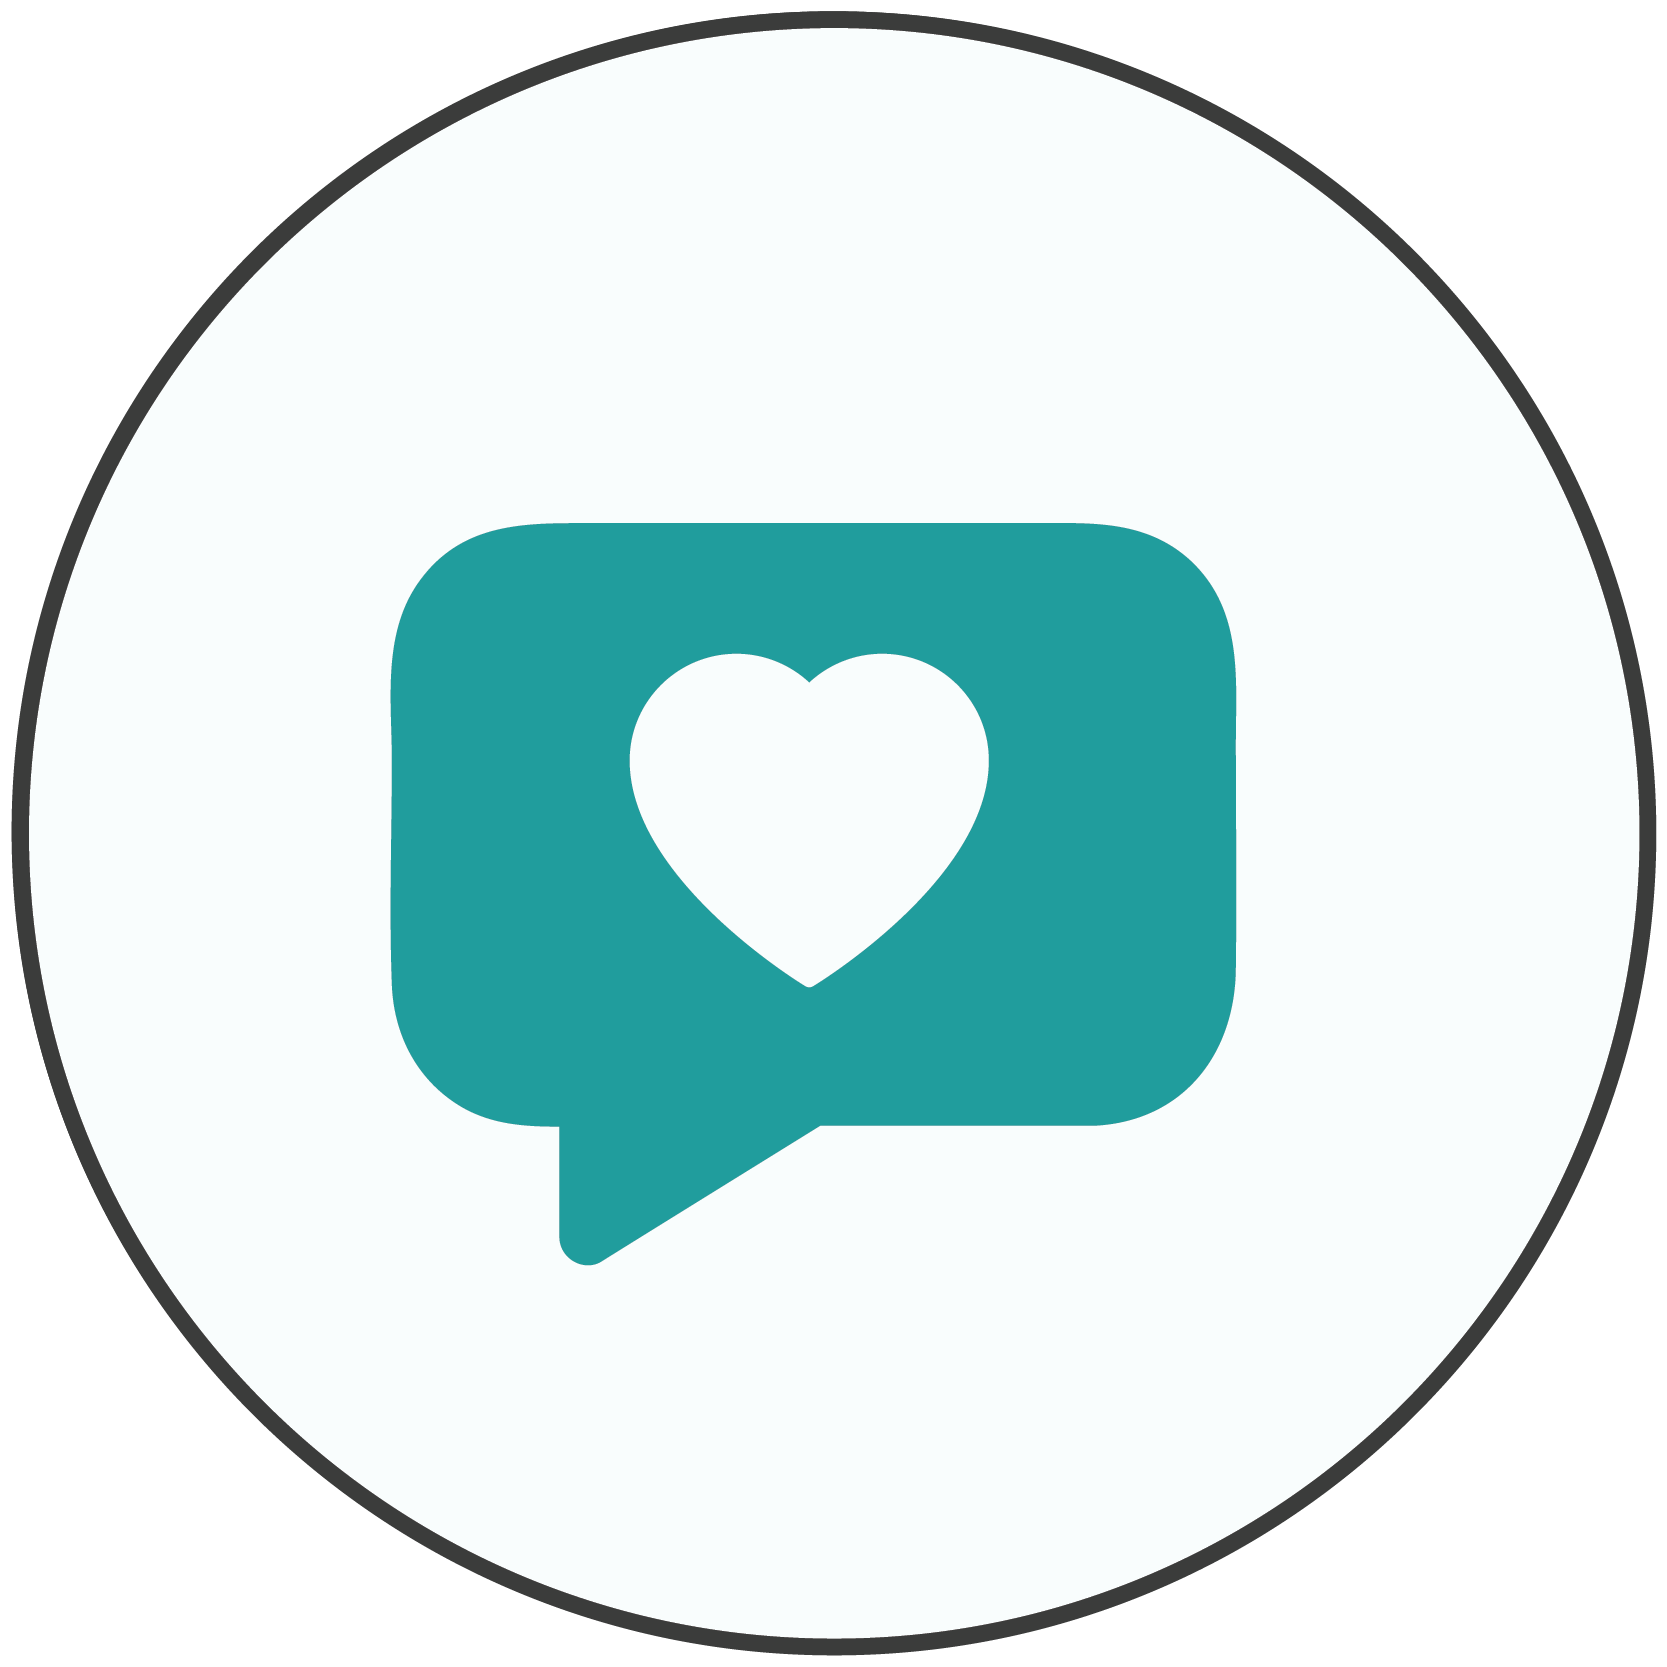 Teal icon of a speech bubble with a heart